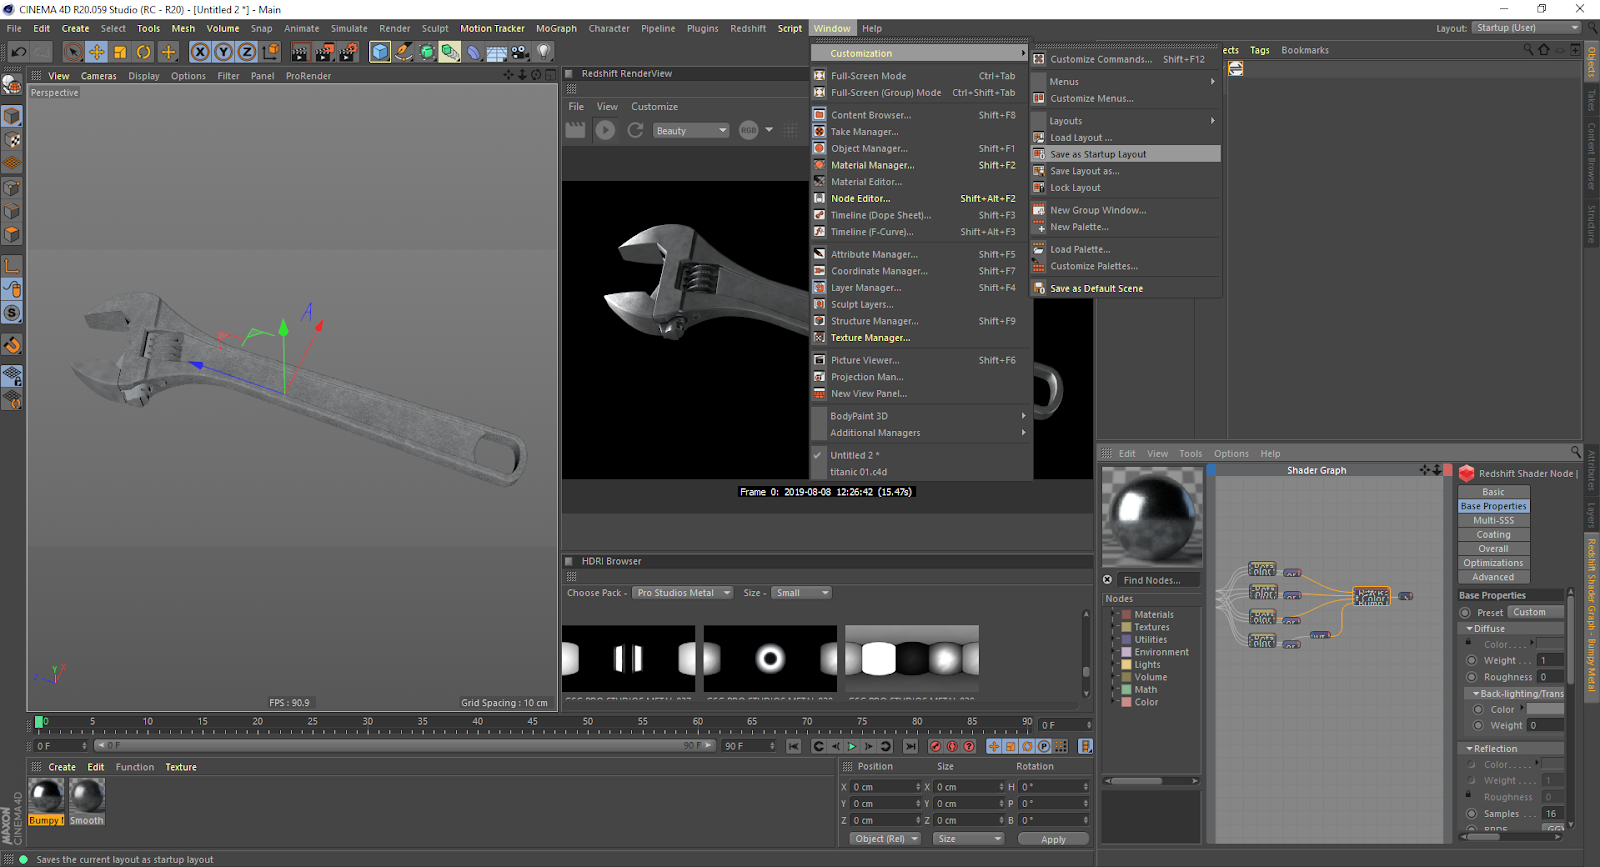 8 tips to increase your efficiency with Cinema 4D - ftrack